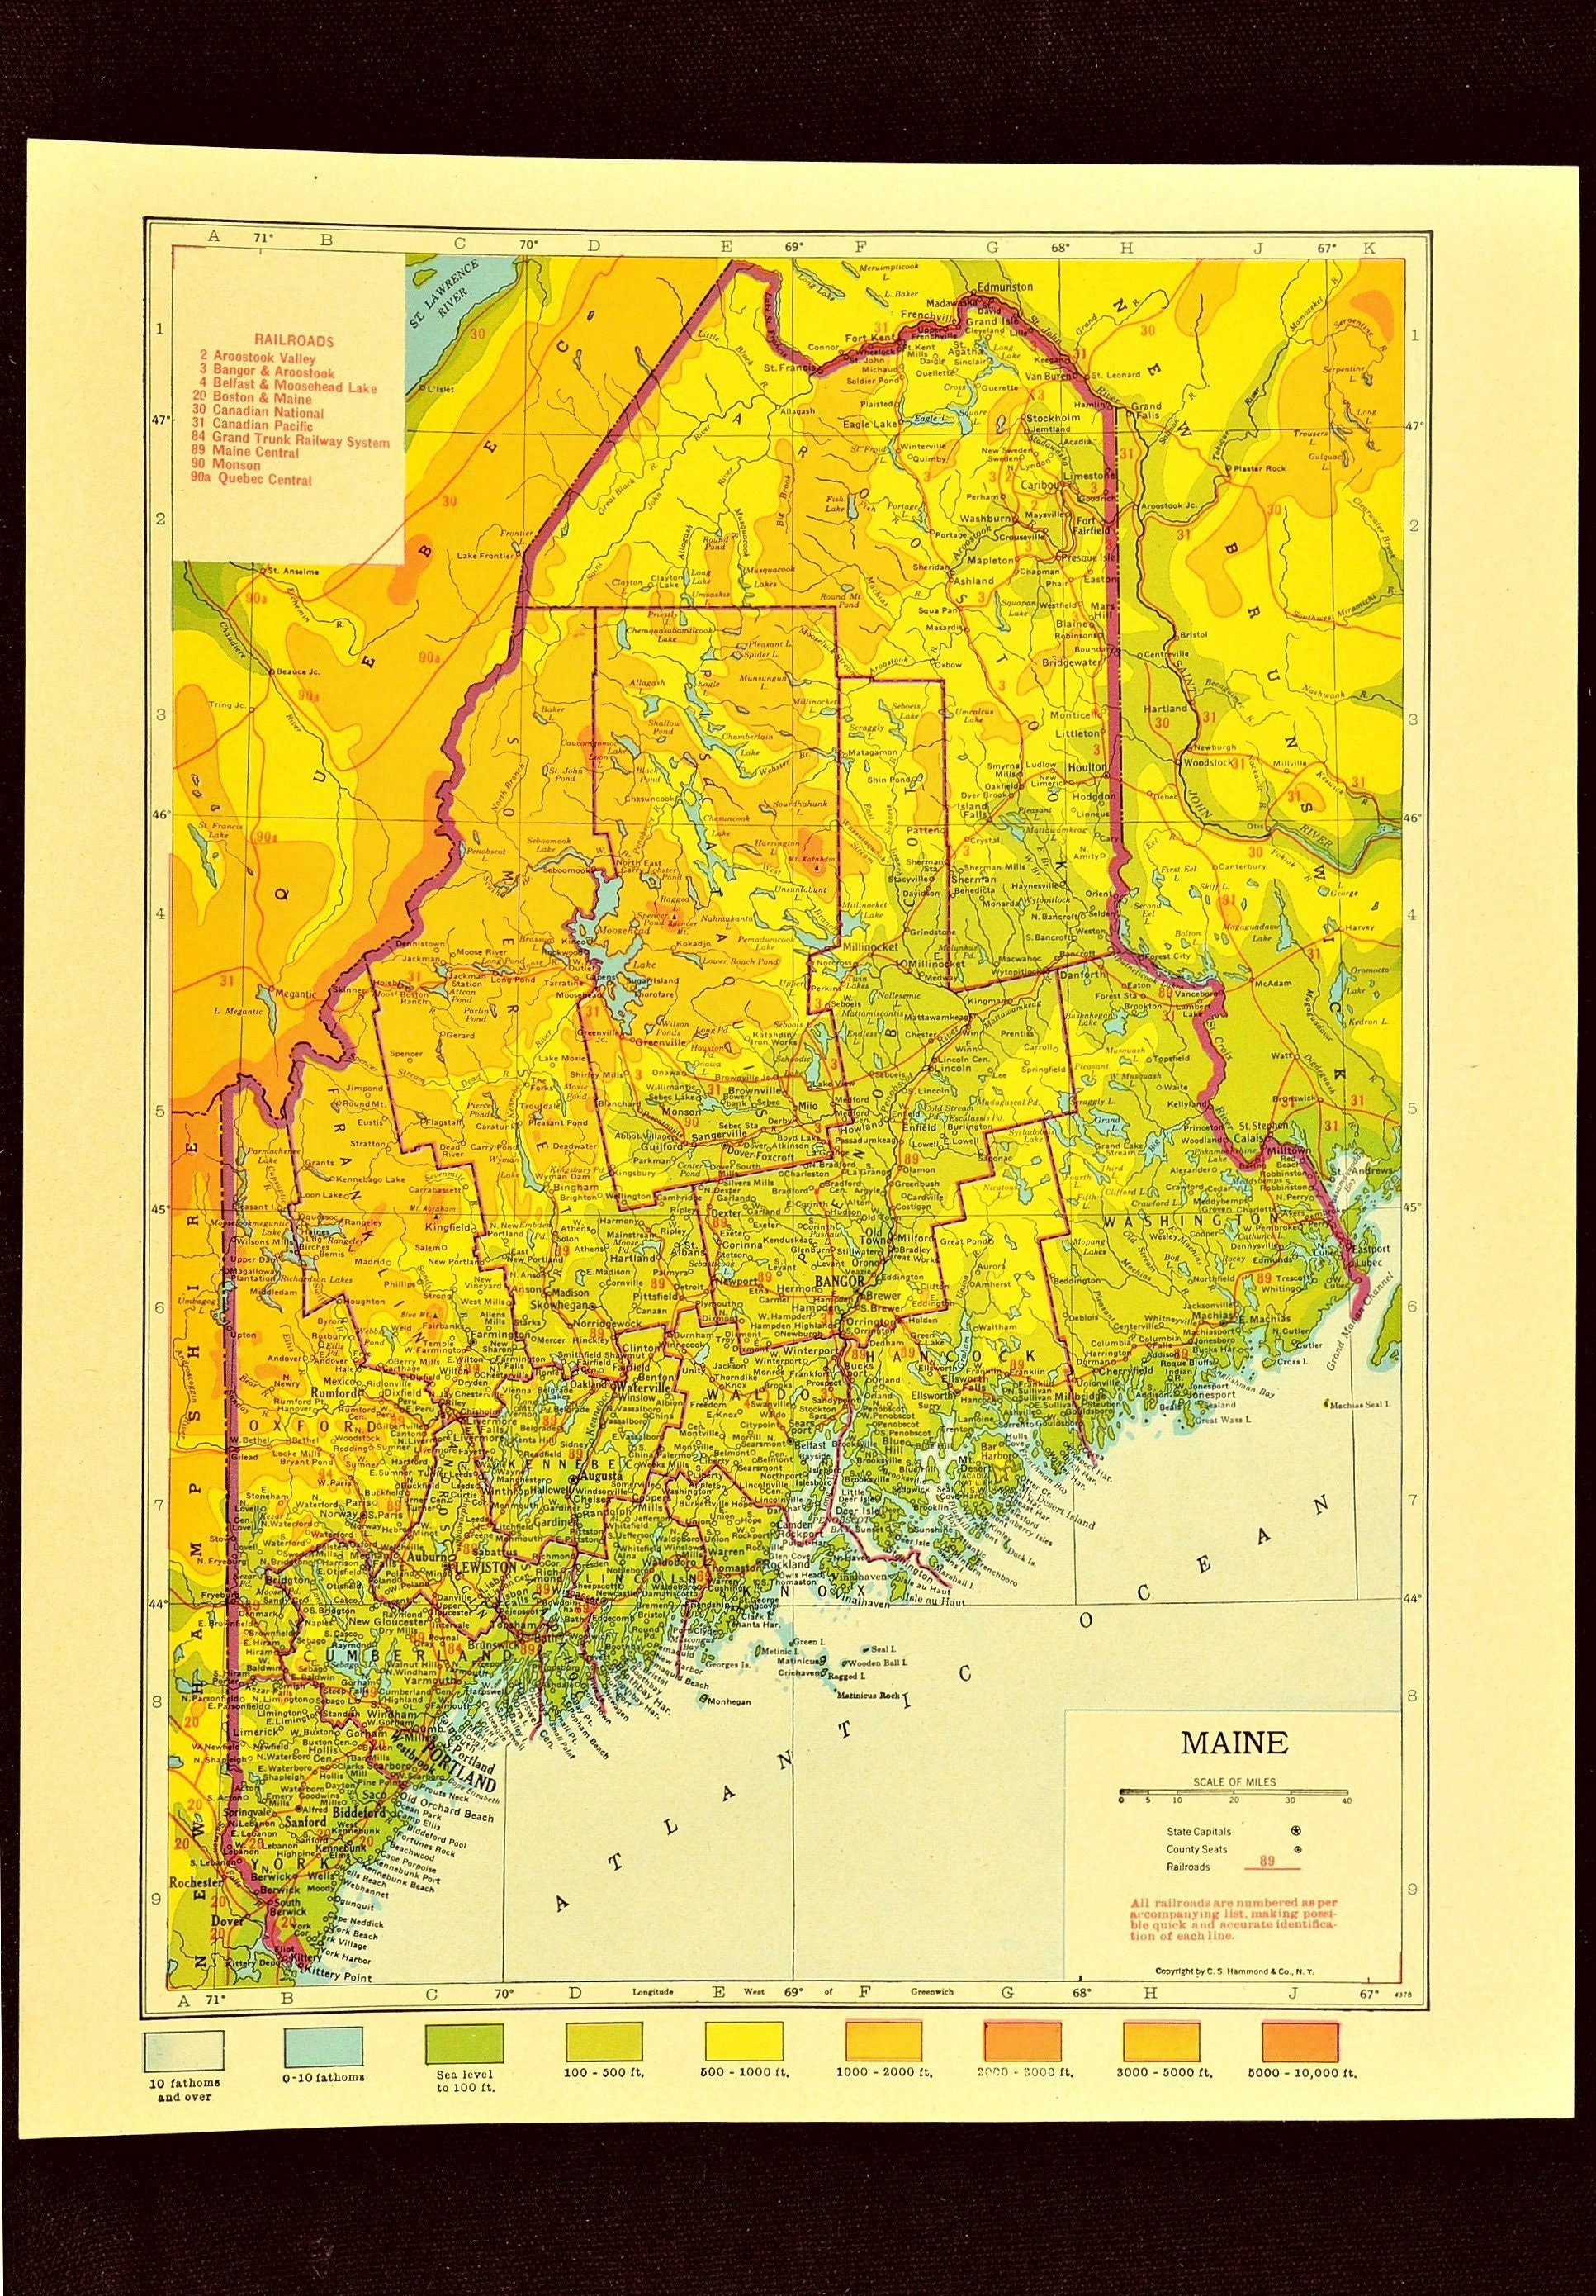 Maine Map Of Maine Topographic Map Wall Art Decor Colorful Etsy